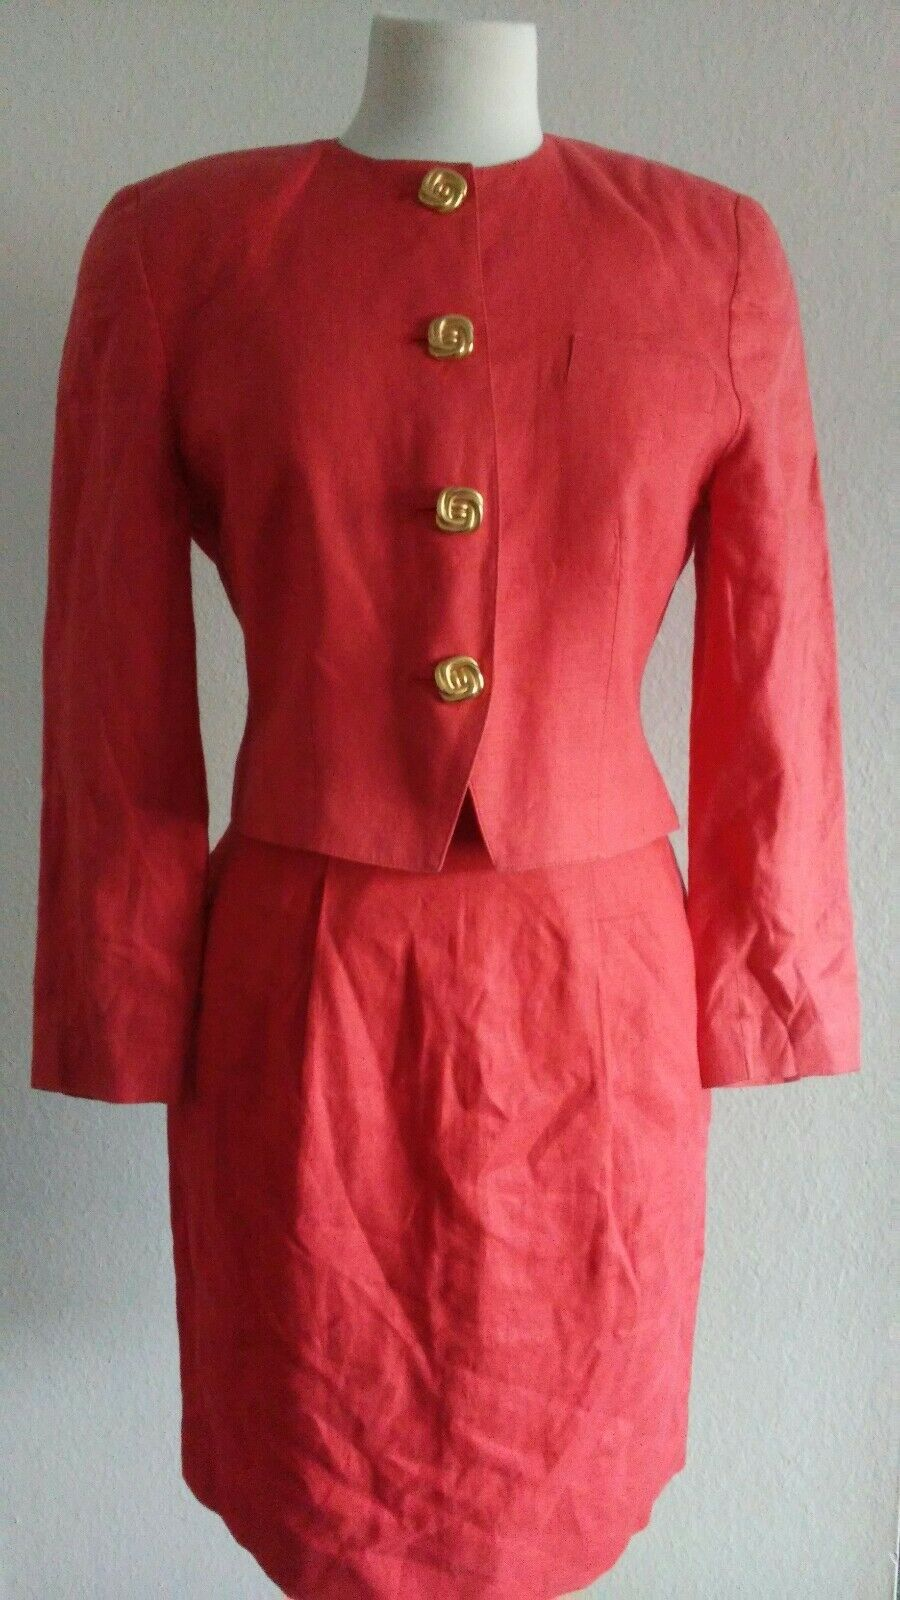 Valerie Stevens Petite Women's orange Blazer Skirt Suit Sz 4P